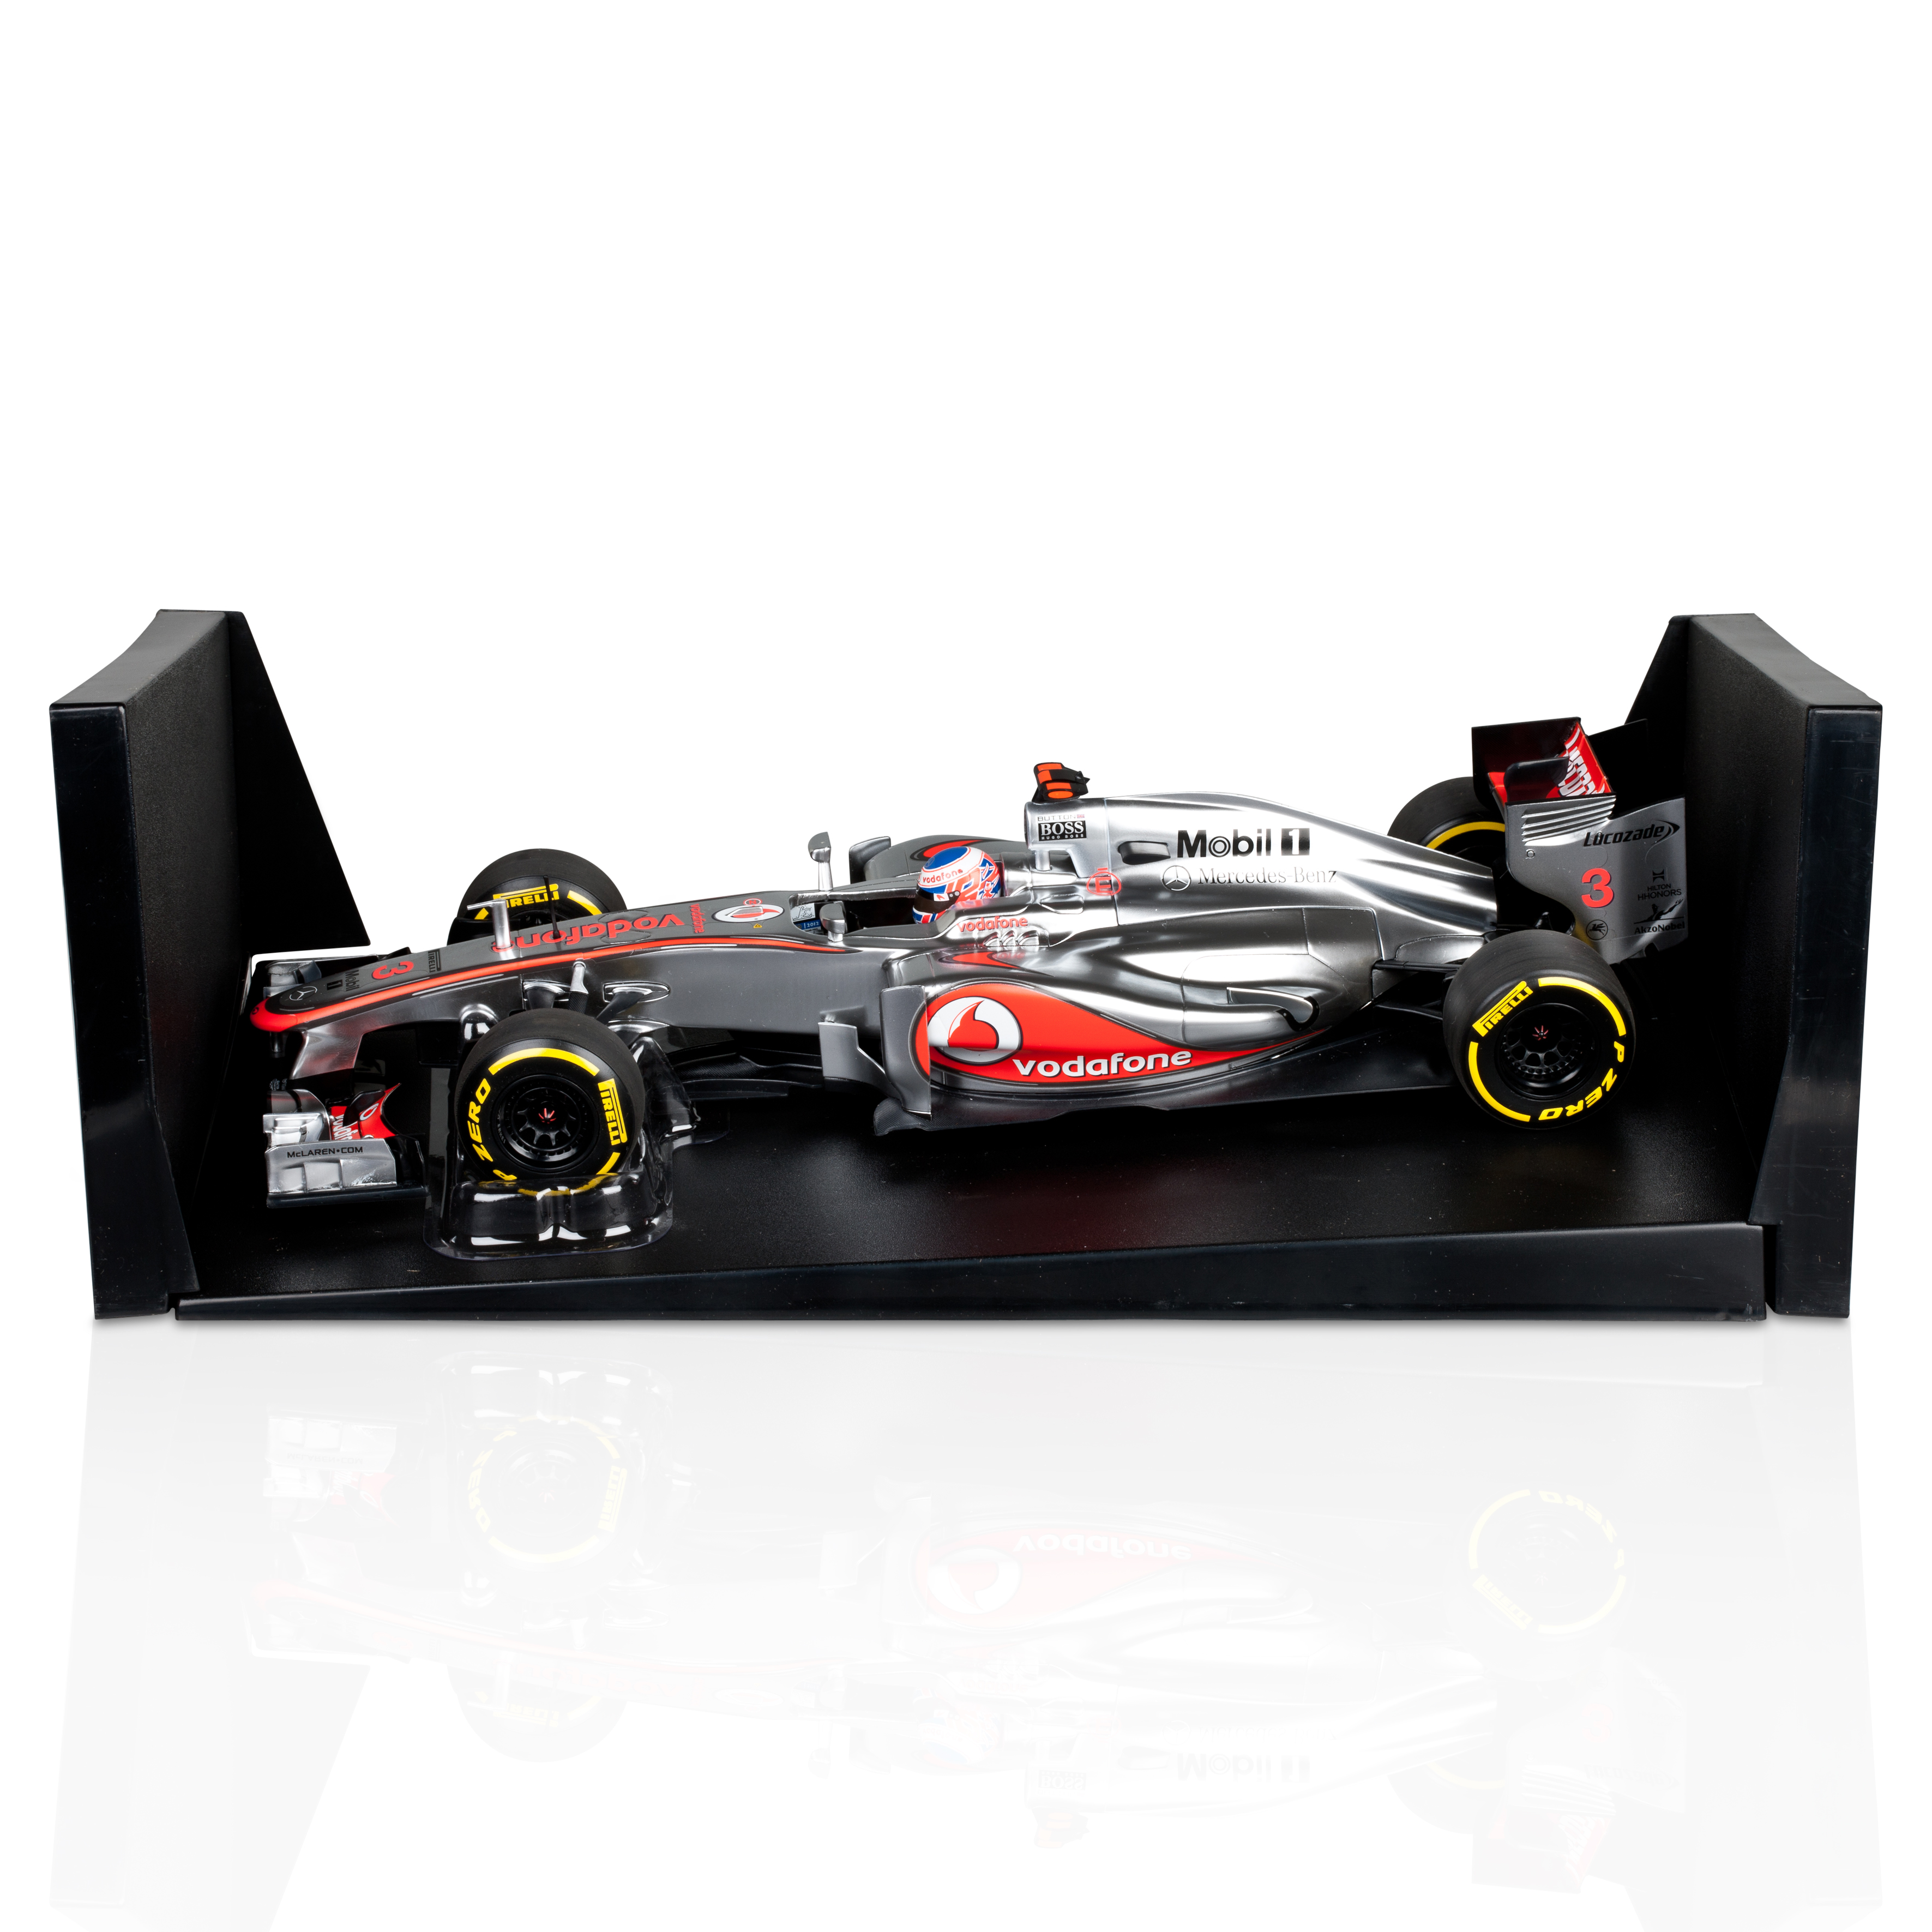 Vodafone Mclaren Mercedes MP4-27 2012 Jenson Button 1:18 Scale